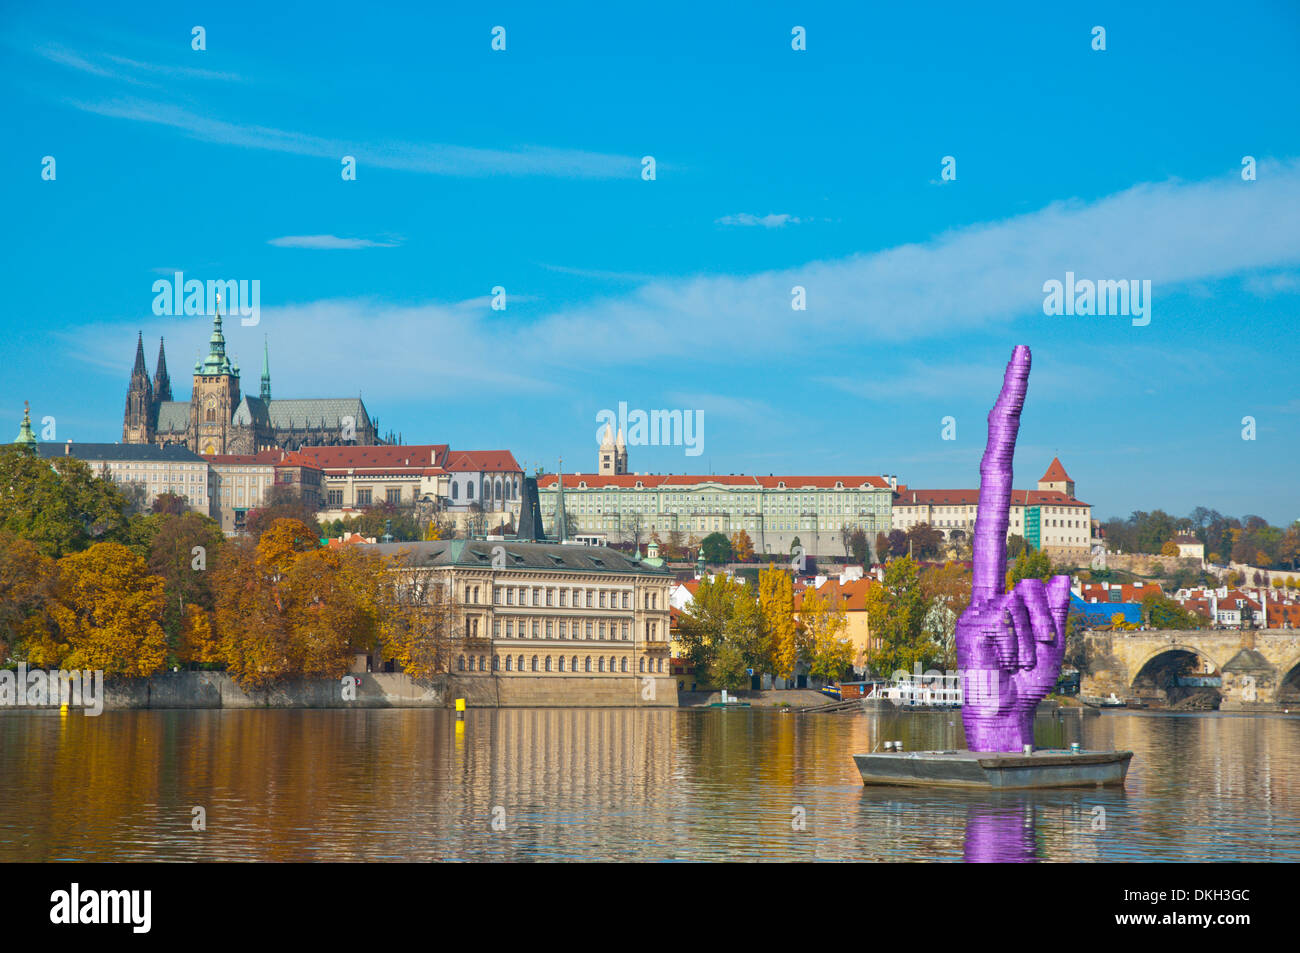 David Cerny's temporary sculpture middle finger pointing at the castle Prague, Czech Republic, Europe - Stock Image